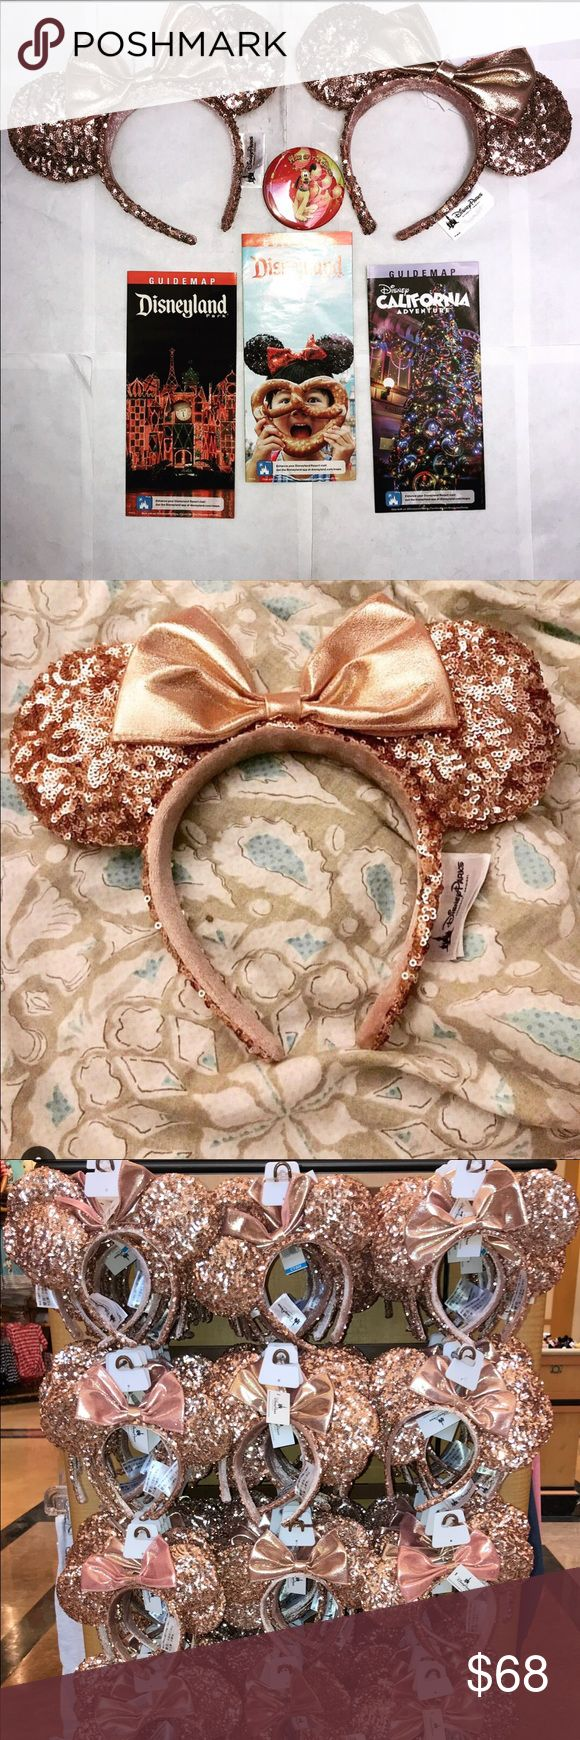 """GET (2) DISNEYLAND """"ROSE GOLD"""" MINNIE MOUSE EARS """"NOW AVAILABLE FOR A VERY LIMITED TIME""""   New DISNEYLAND """"ROSE GOLD"""" MINNIE MOUSE EARS   NOW WITH THIS OFFER YOU GET (2) DISNEYLAND """"ROSE GOLD"""" MINNIE MOUSE EARS .... AT A """"VERY LOW PRICE""""   THESE DISNEYLAND """"ROSE GOLD"""" MINNIE MOUSE EARS HAVE BEEN SELLING LIKE CRAZY !! .... DISNEYLAND CAN'T KEEP ENOUGH OF THESE IN STOCK ... MANY SELLERS ARE SELLING THESE """"ROSE GOLD"""" MINNIE EARS AT """"VERY HIGH PRICES"""" ON ( EBAY - AMAZON - INSTAGRAM ) STARTING AT…"""